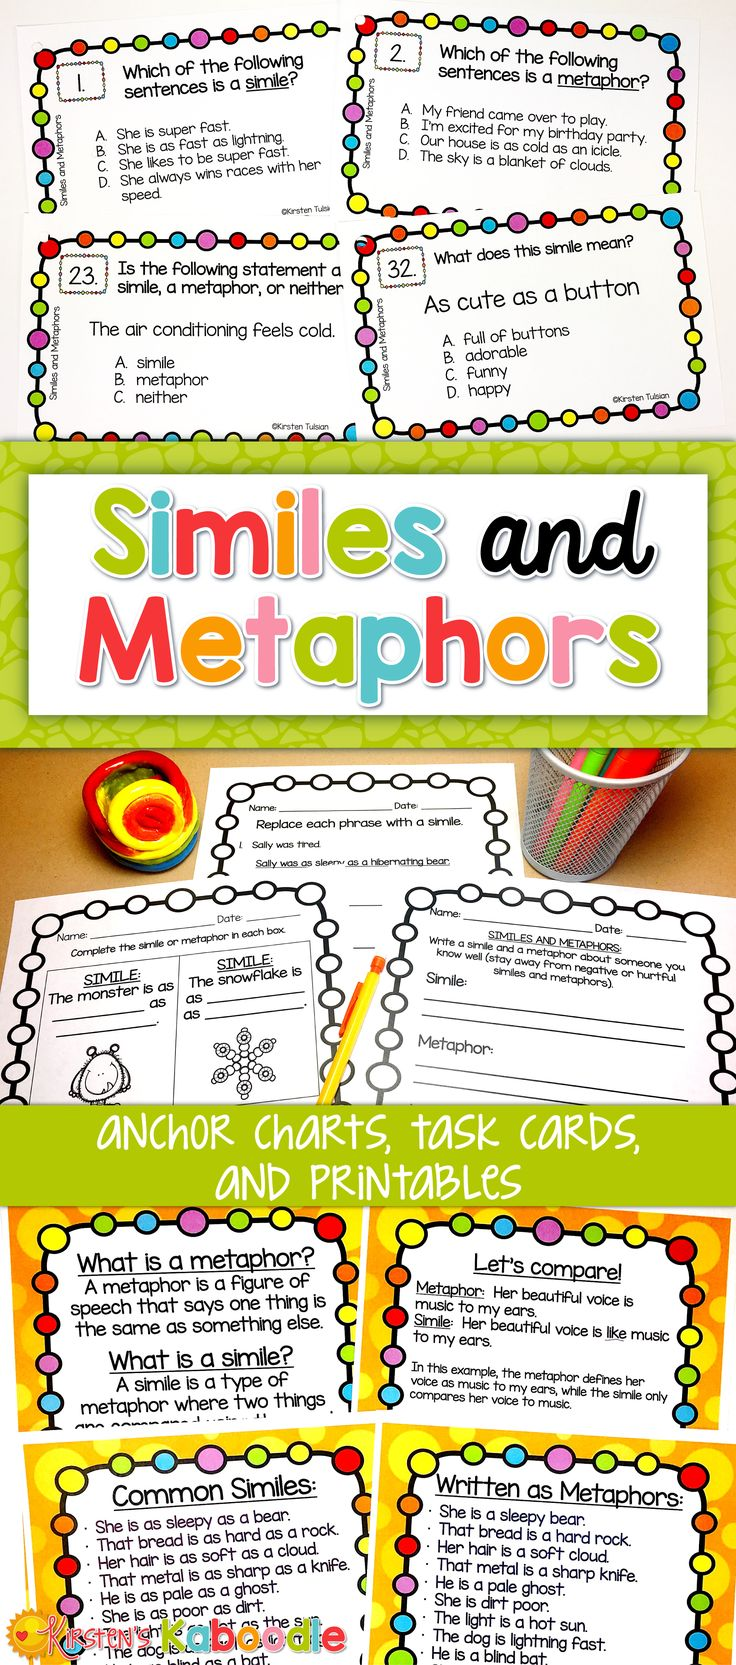 Are you looking for an engaging way to teach your students about similes, metaphors, and other figurative language? With anchor charts, task cards, and printables, these easy to use similes and metaphors activities and lessons can be implemented in any 3rd-6th grade classroom! Don't forget to check out the other 7 figurative language lessons in this series!